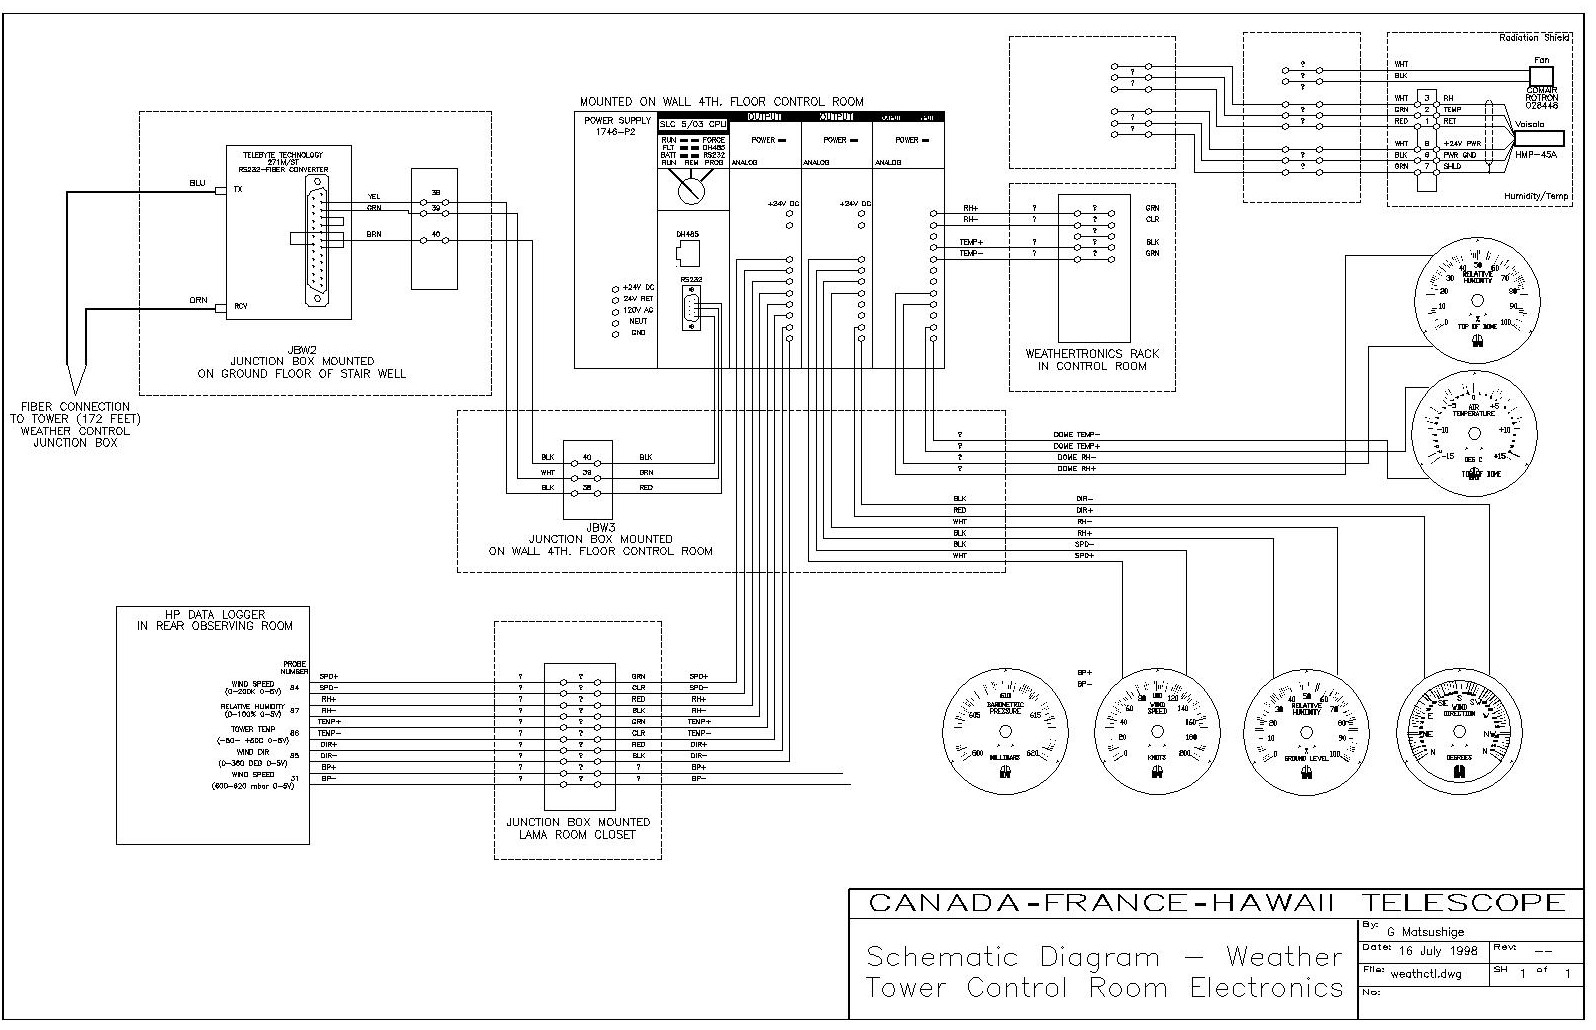 powerflex 755 wiring diagrams carbonvote mudit blog u2022 rh carbonvote mudit blog